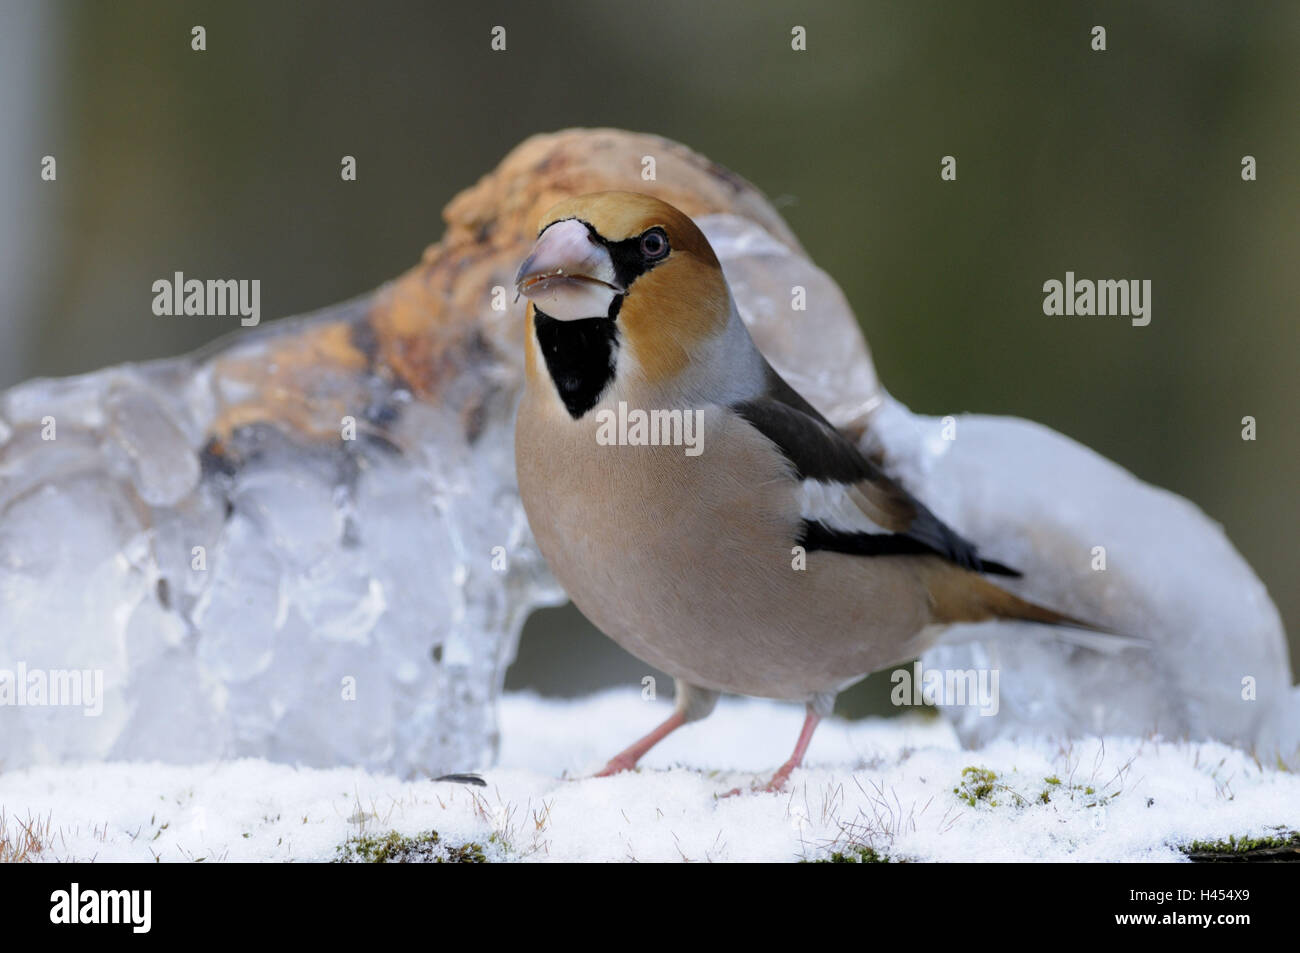 Hawfinch, Coccothraustes coccothraustes, - Stock Image